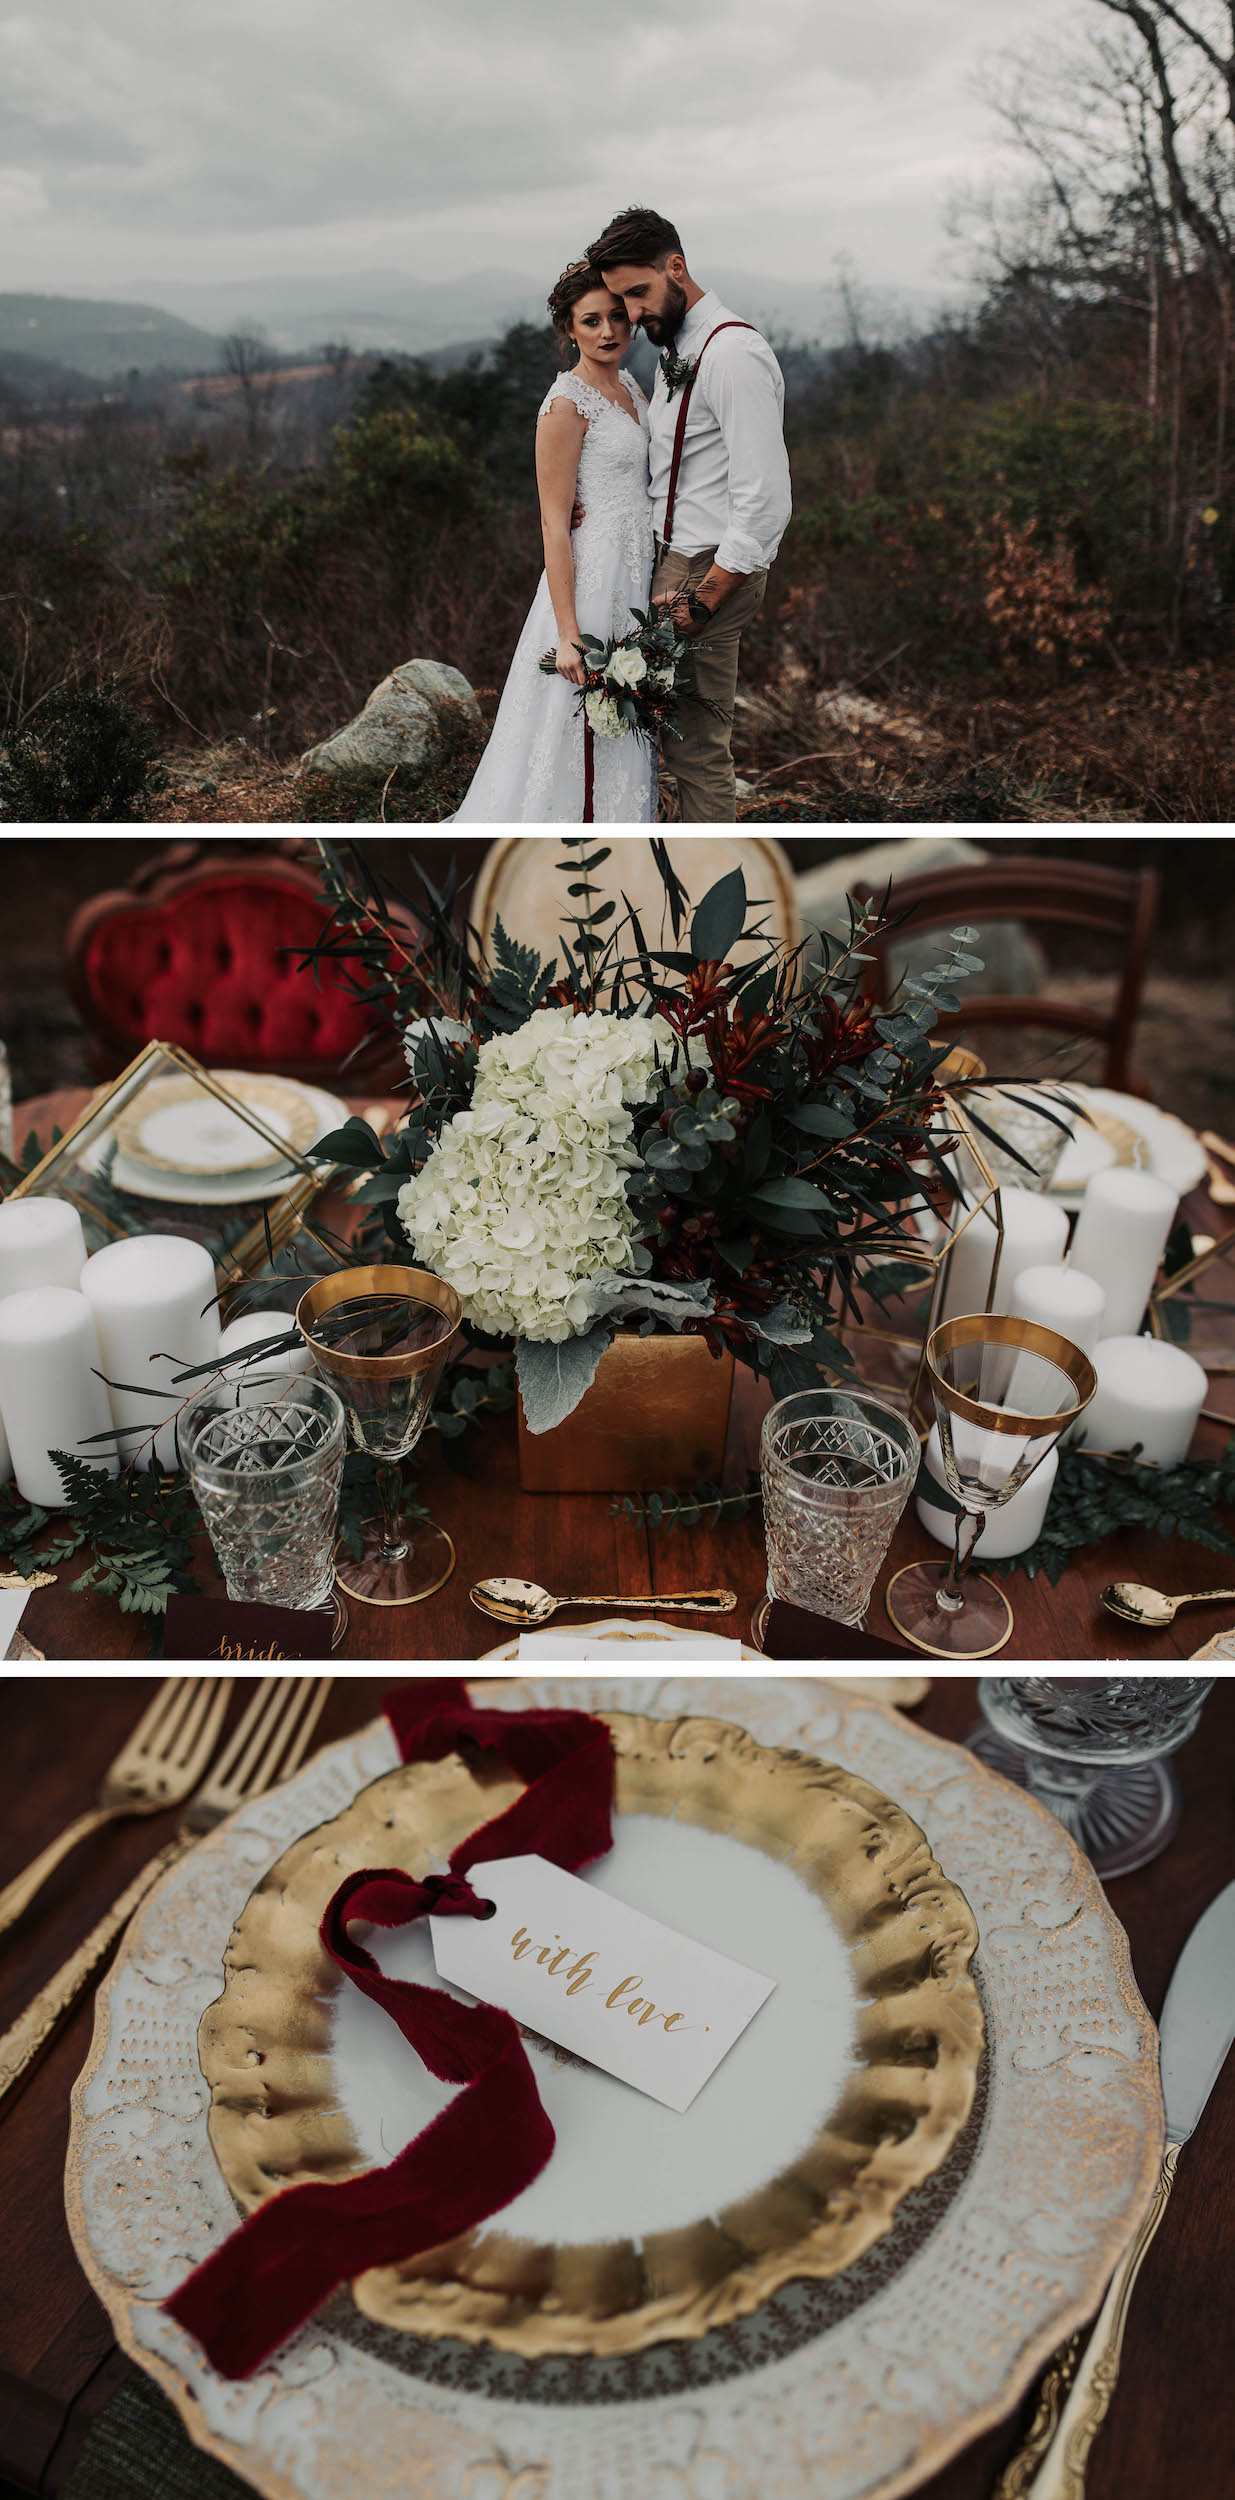 Romantic Charlotte Area Wedding Styled Shoot at The Cabin Ridge in the Great Smoky Mountains